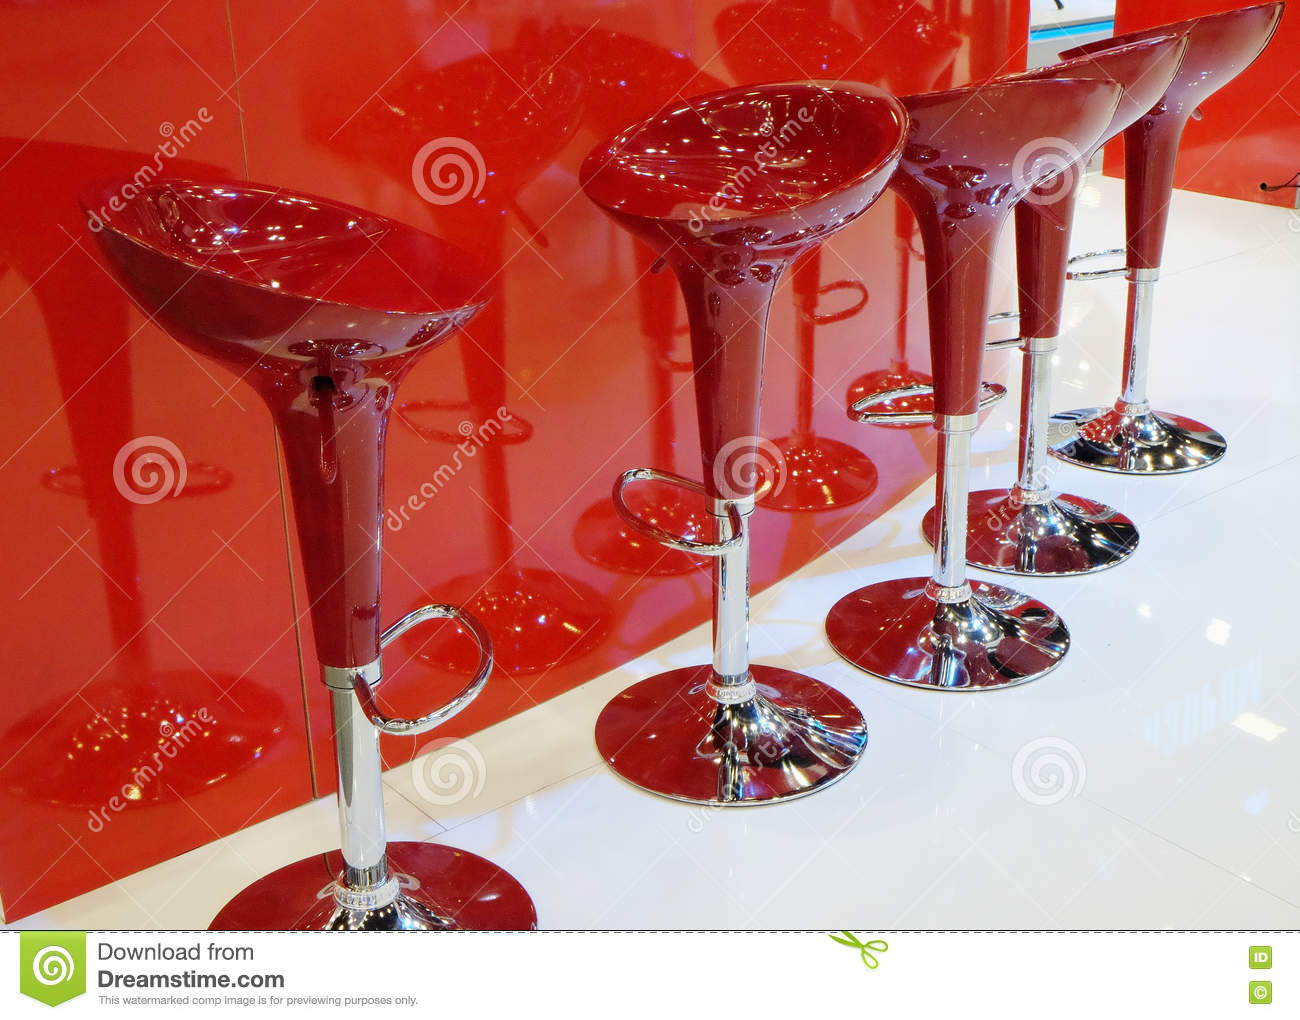 Picture of: Modern Red Bar Stools Stock Image Image Of Modern Food 79047017